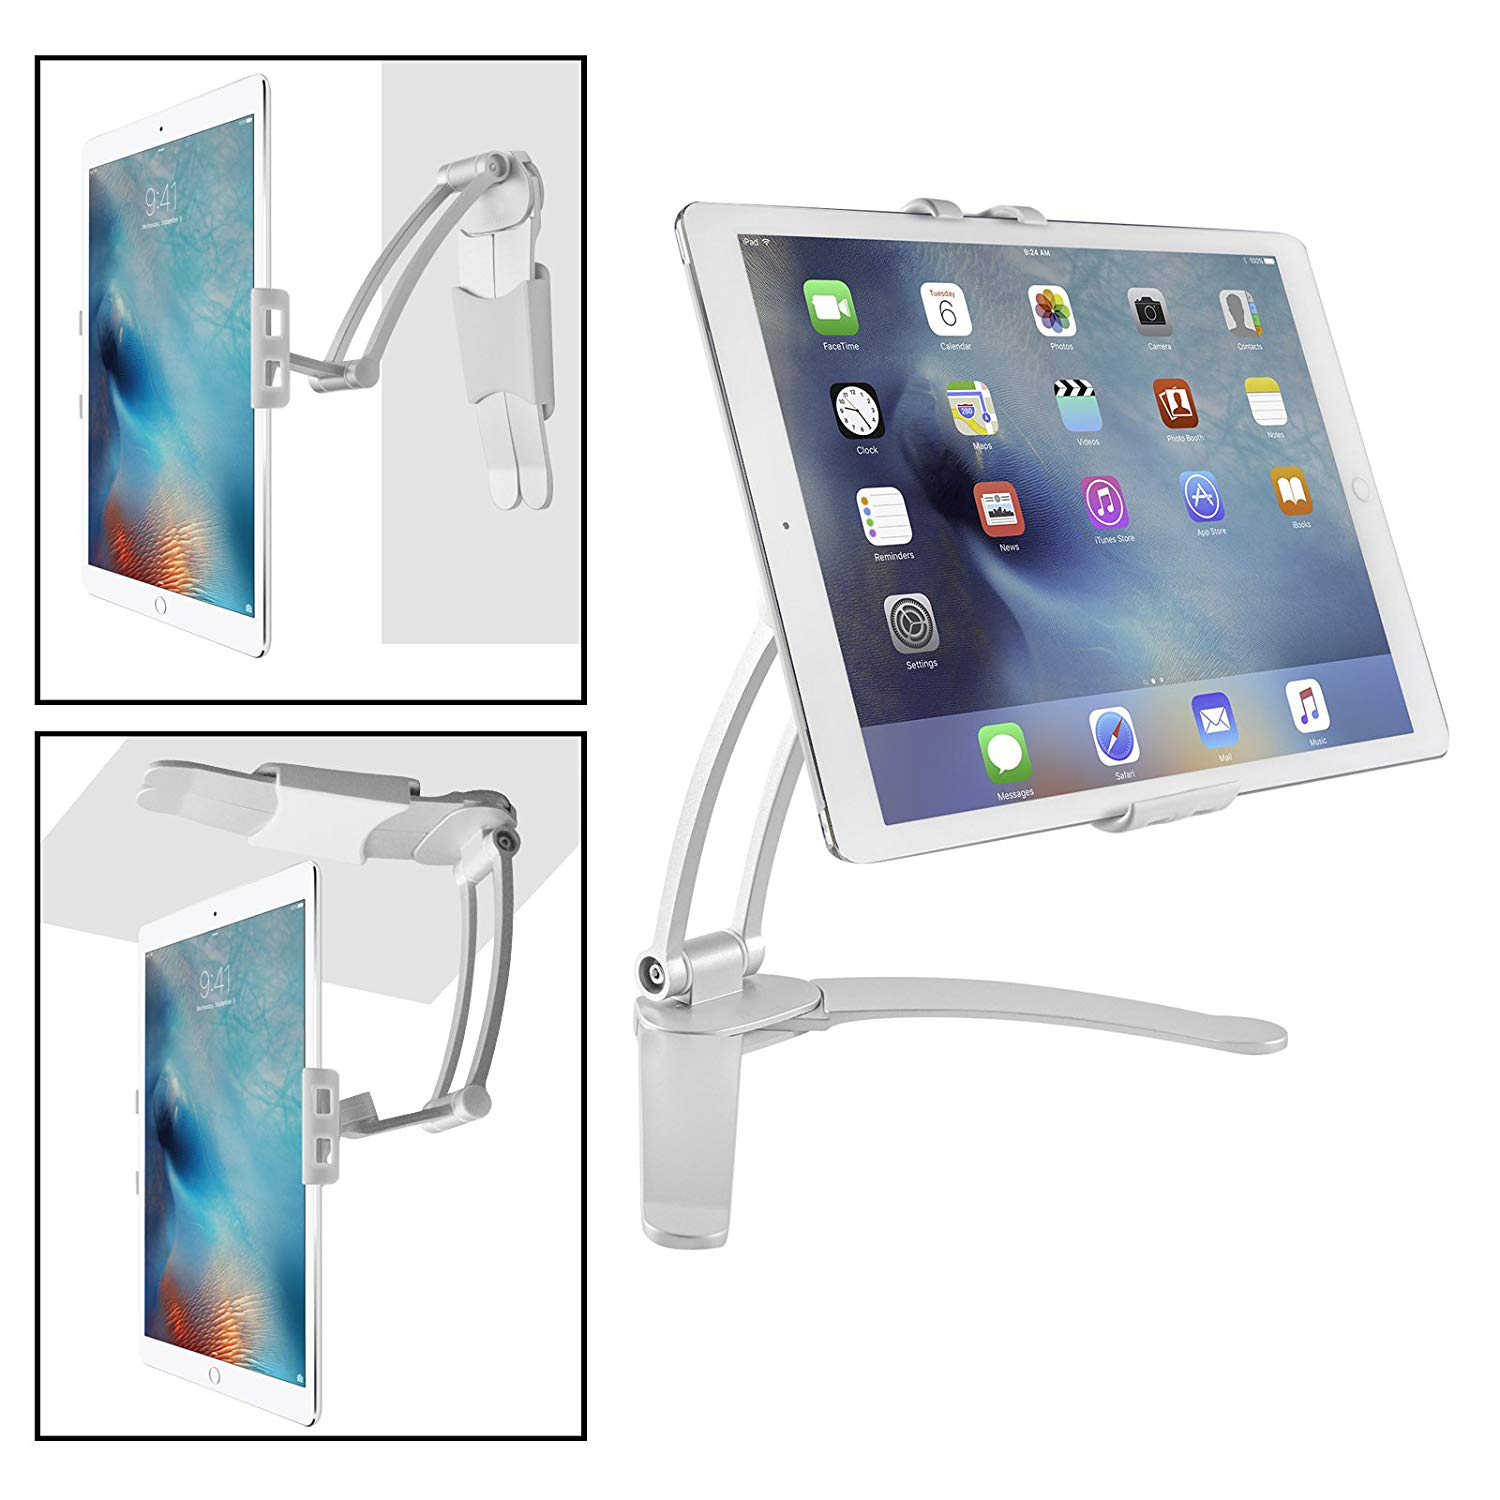 2-in-1 Kitchen Desktop Tablet Stand Wall Mount for iPad Holder with Stylus  for 7-13 Inch Tablets 2018/iPad Pro 12.9/9.7/Air